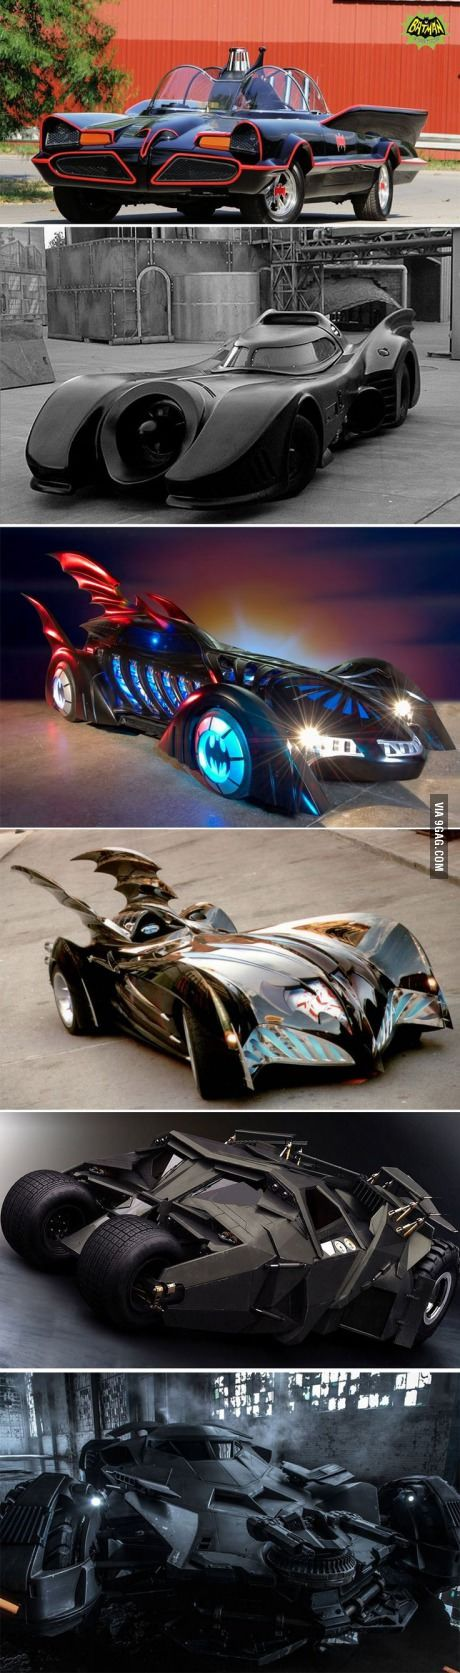 Evolution of the Batmobile